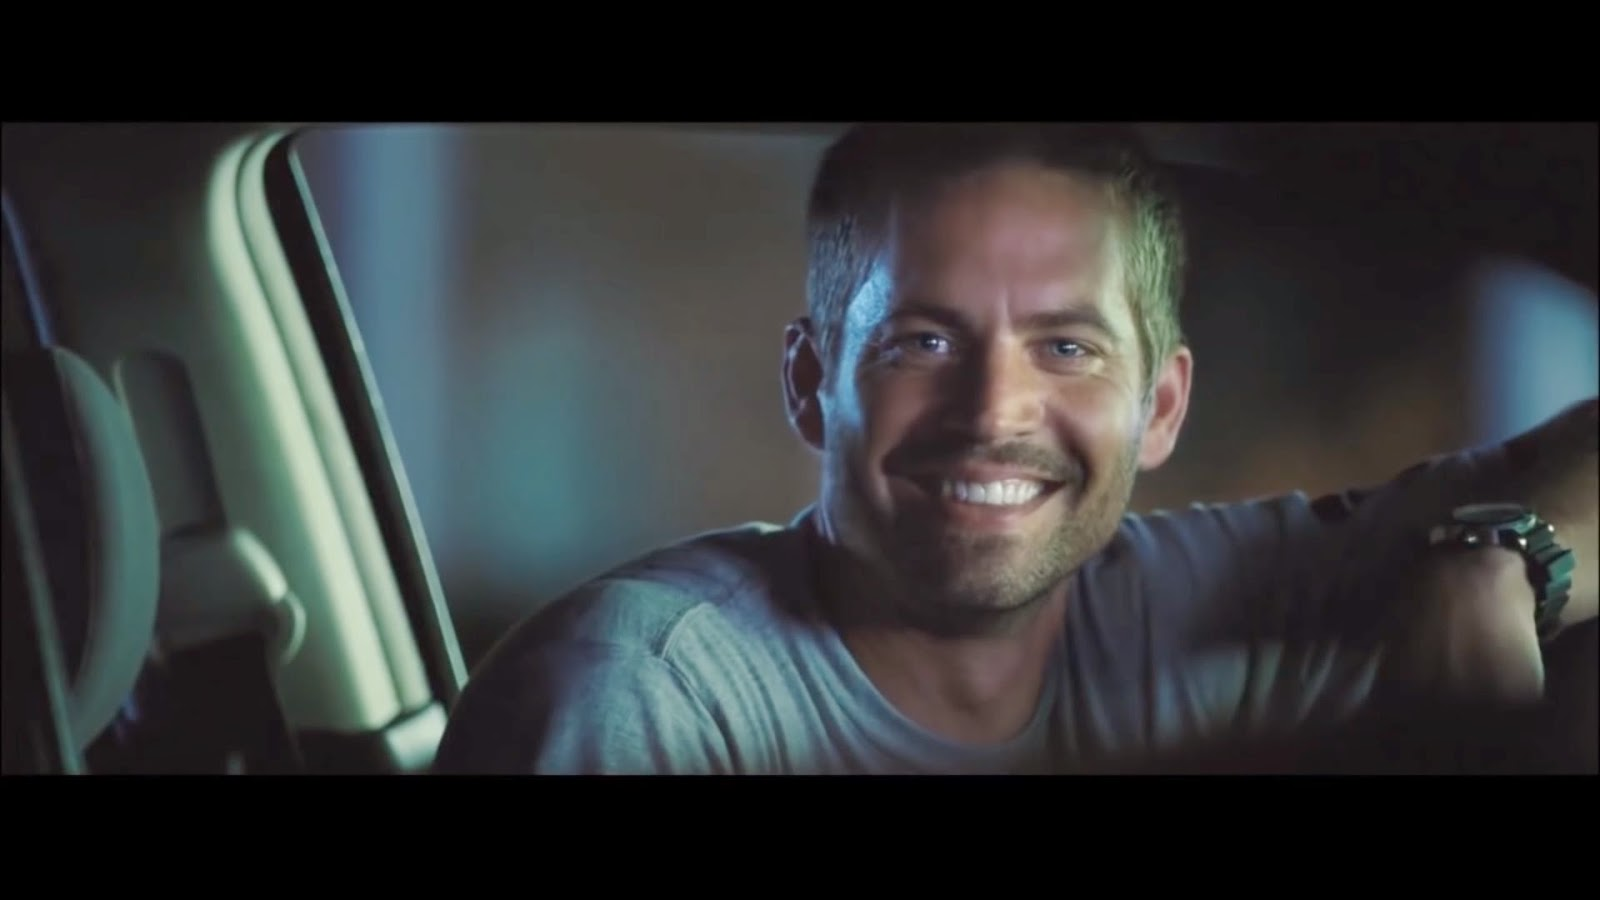 The Latest Fast And Furious Franchise 7 Left Many In Tears As They Got To Watch Late Paul Walker Who Passed Away A Tragic Car